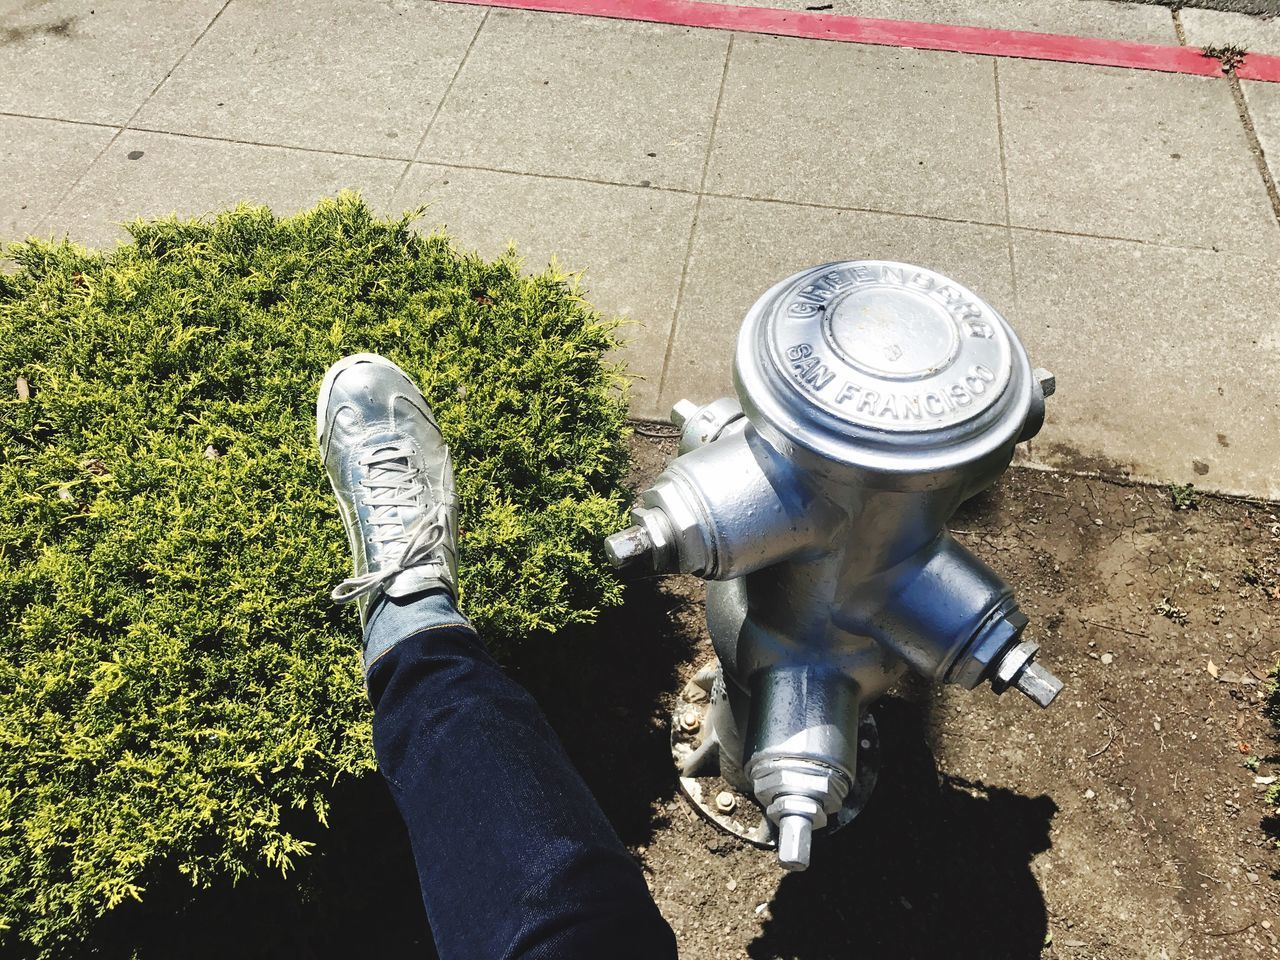 Silver! Human Leg Low Section High Angle View One Person Human Body Part Real People Personal Perspective Day Shoe Men Outdoors Lifestyles Human Hand Nature People